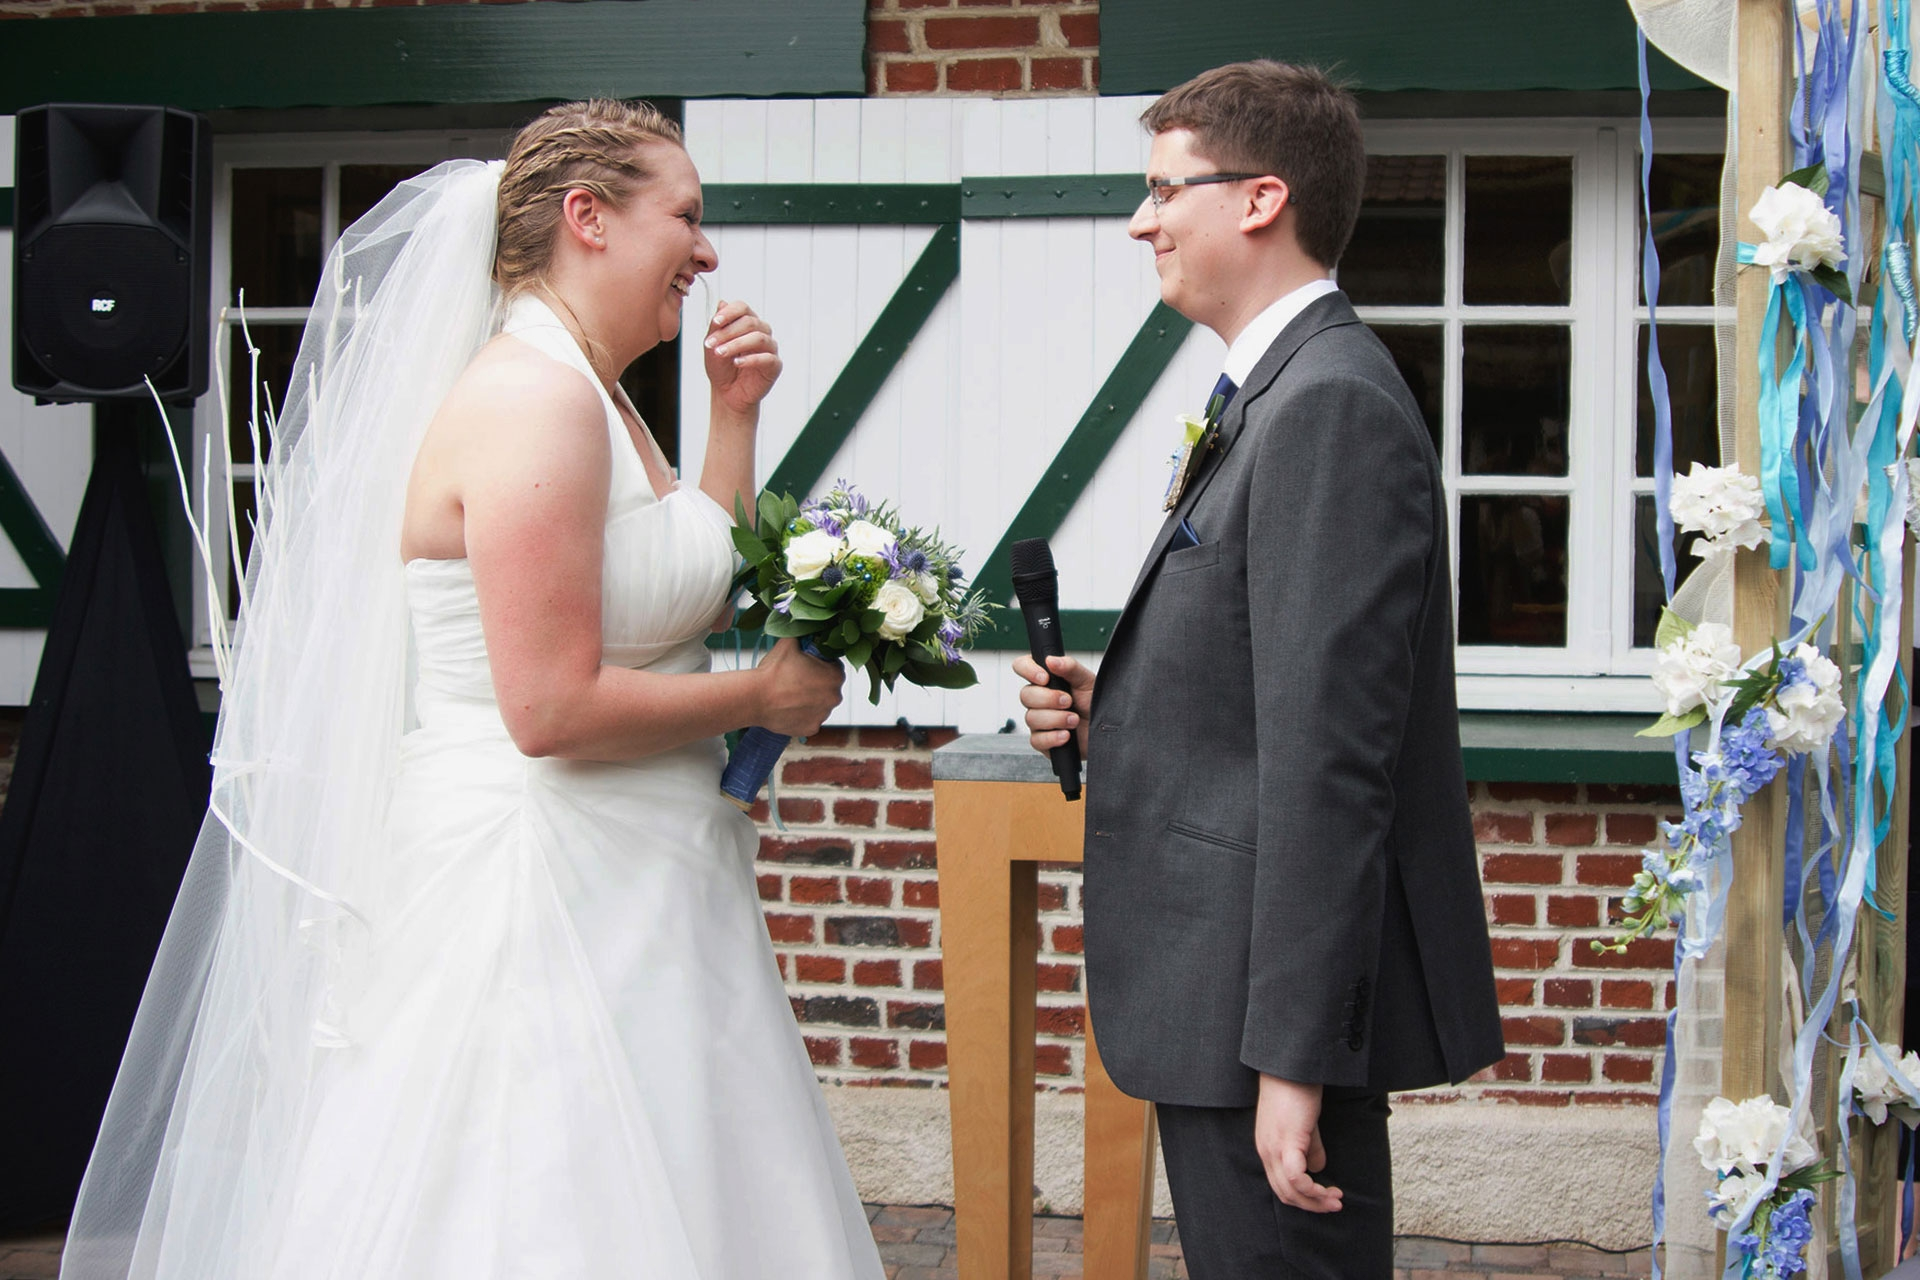 particuliers-mariages-oui-chloemartial-15